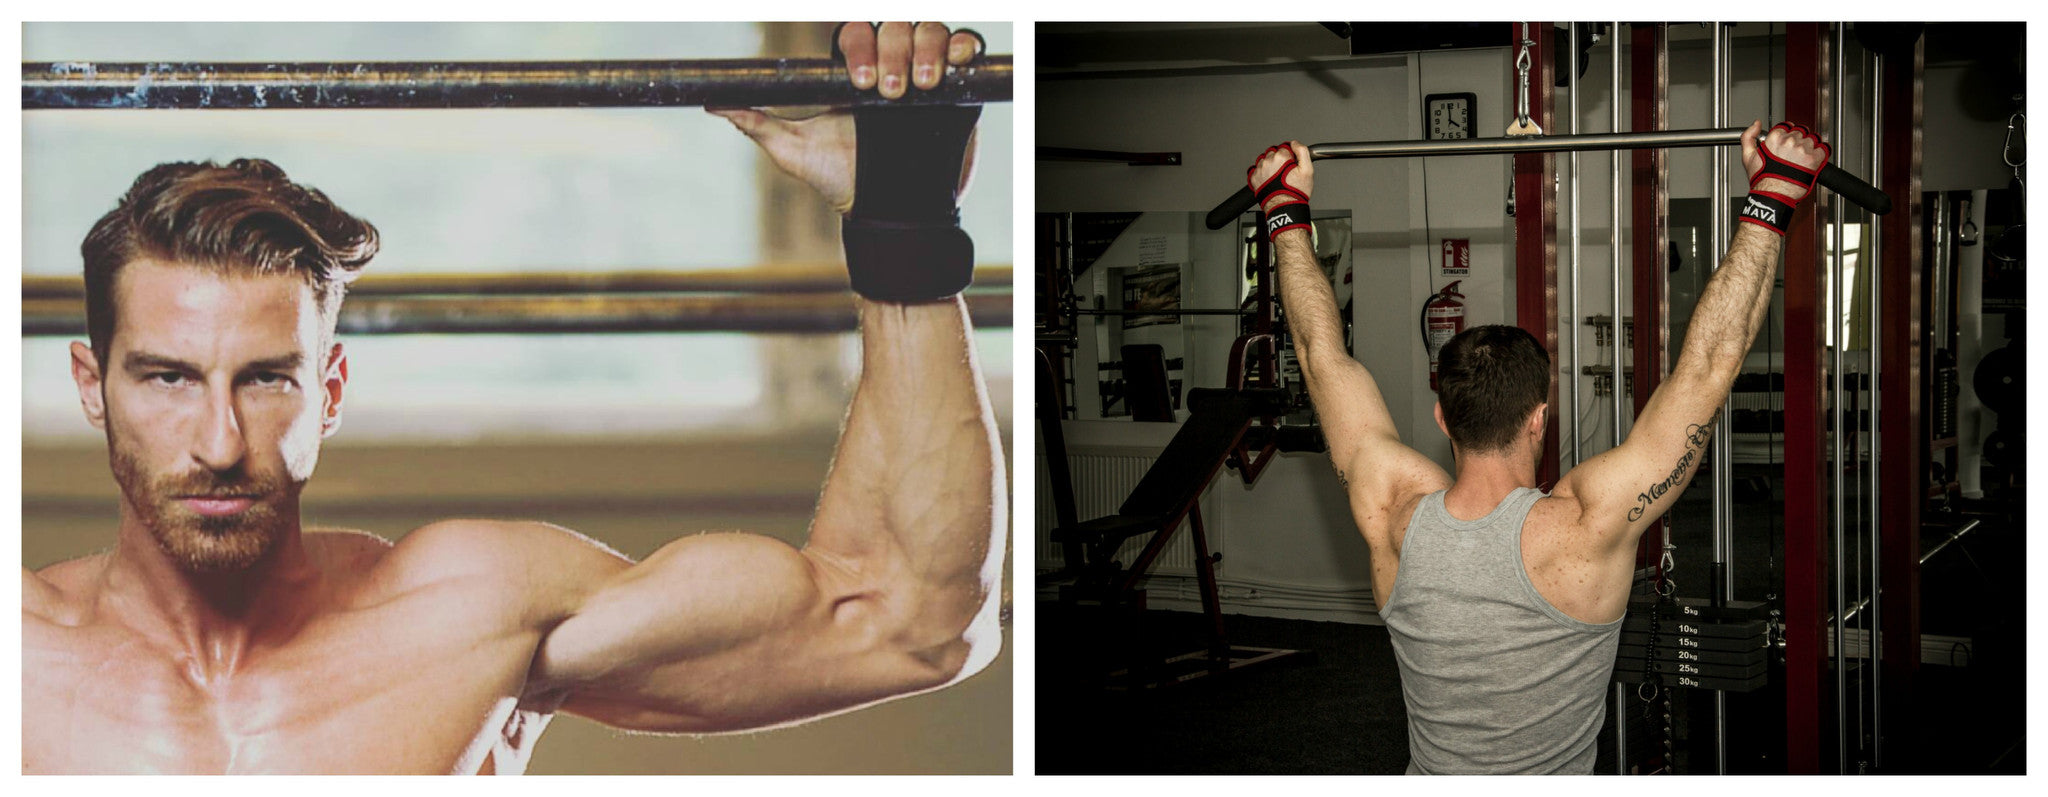 Stretch your sleeves in no time! Get ripped biceps and triceps 💪